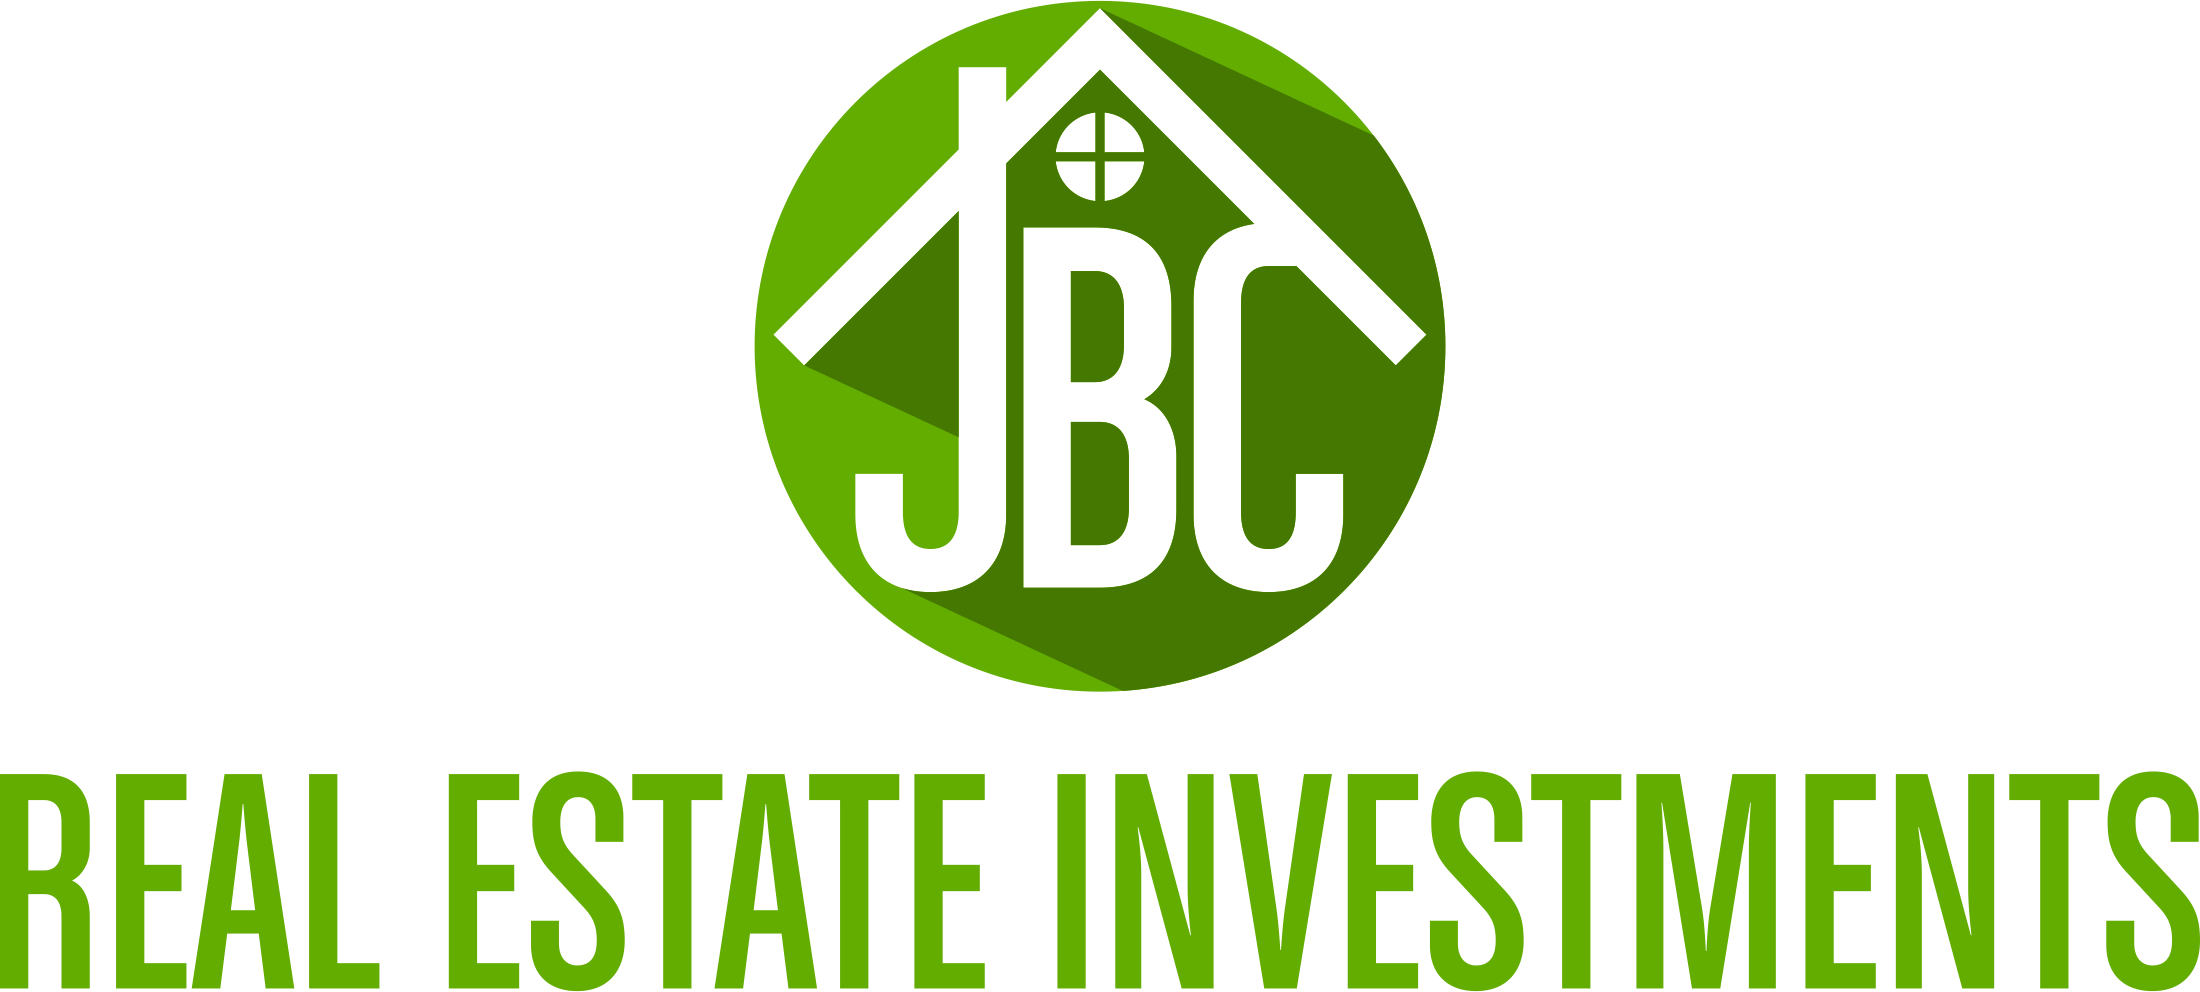 Create an appealing home logo for a real estate investment company